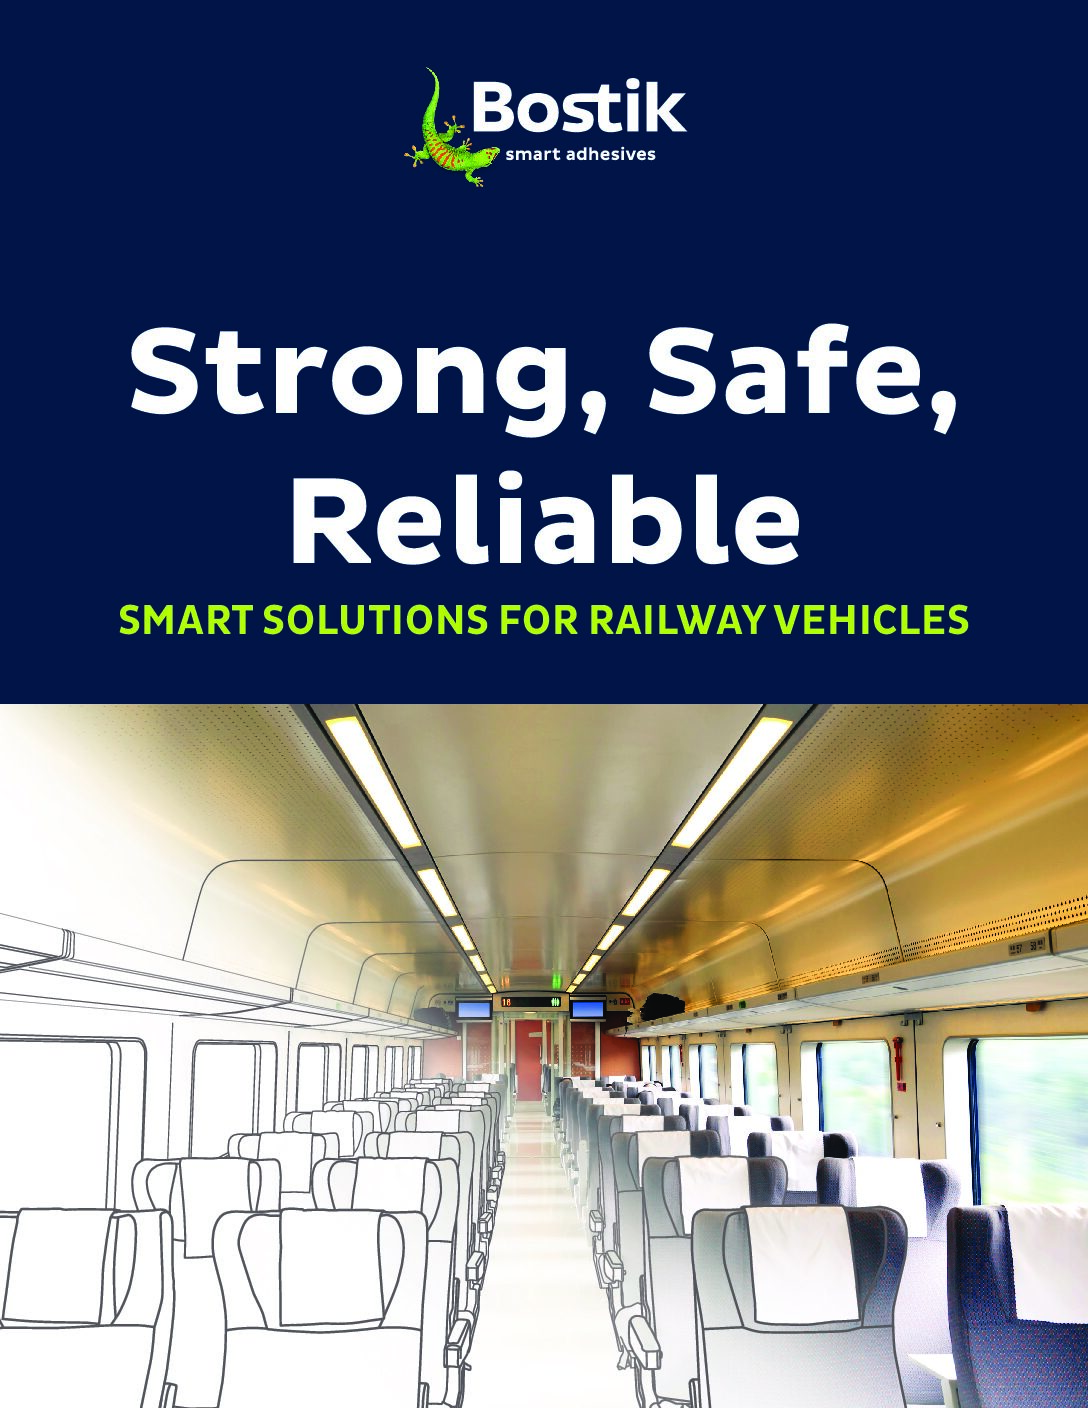 Adhesives for Railway Vehicles